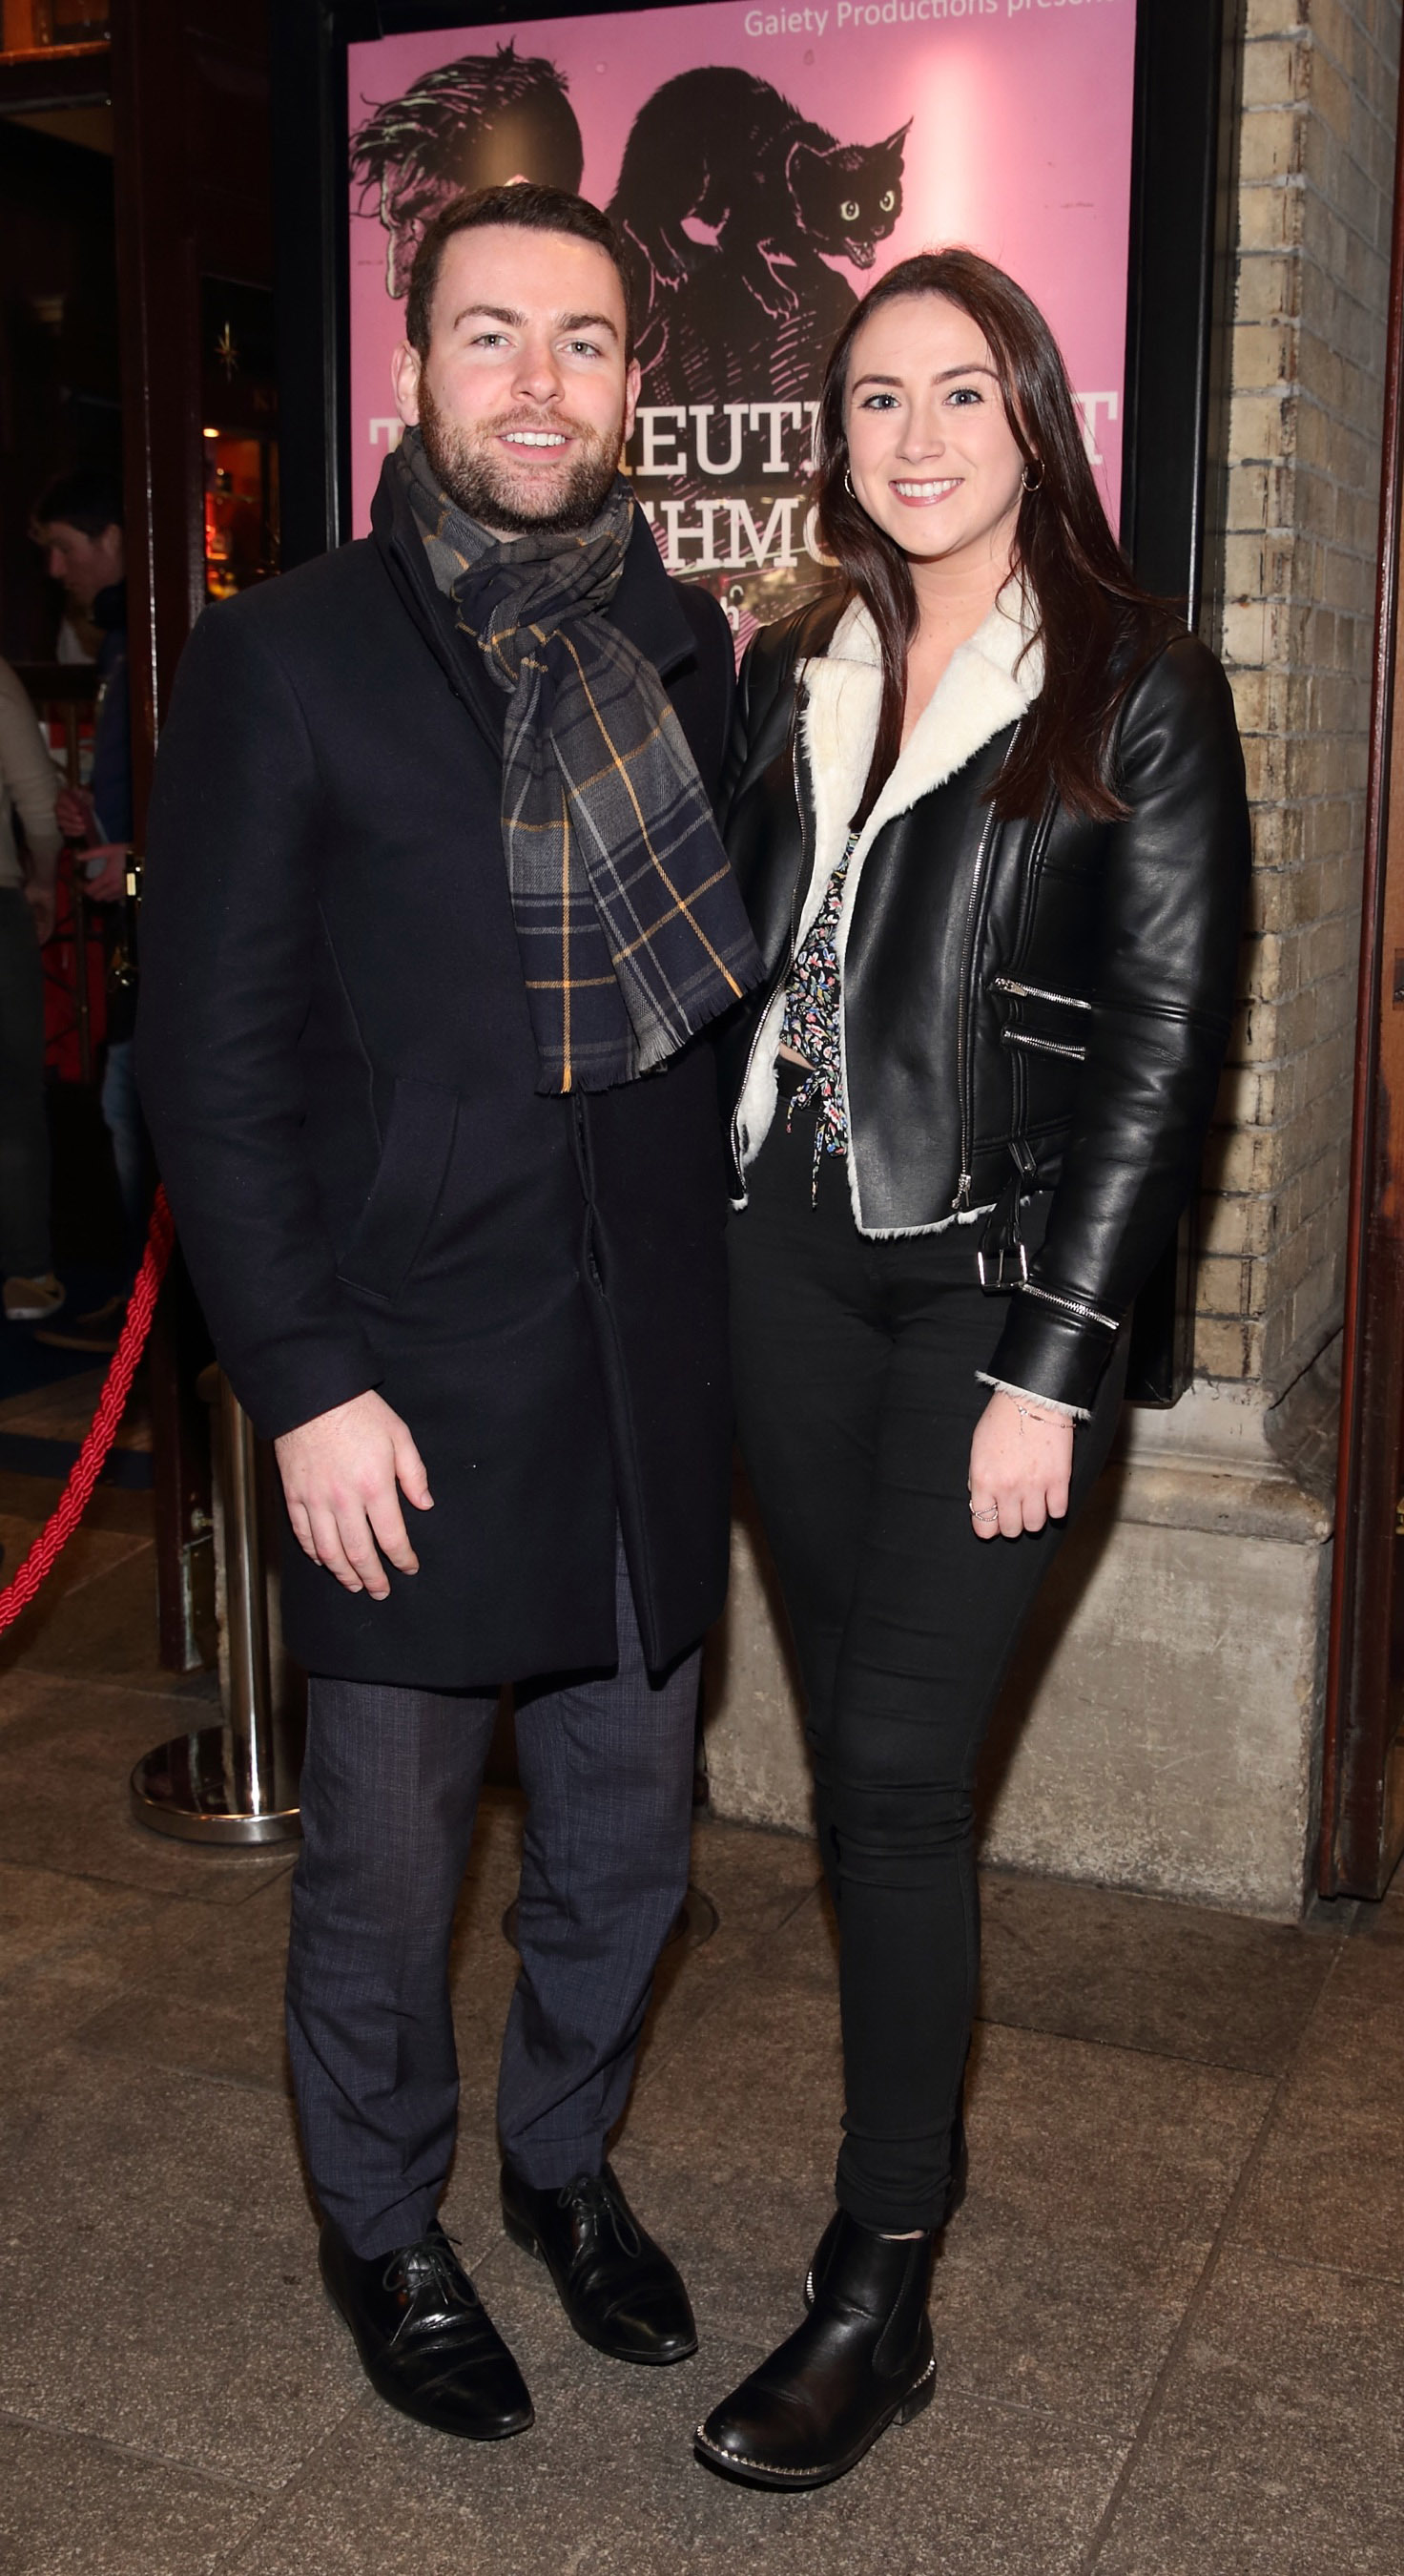 Jack Quinn and Johanna O'Dowd pictured at the opening of the Gaiety Theatre's major new production of Martin McDonagh's 'The Lieutenant of Inishmore', which will run at the Gaiety Theatre until 14th March.